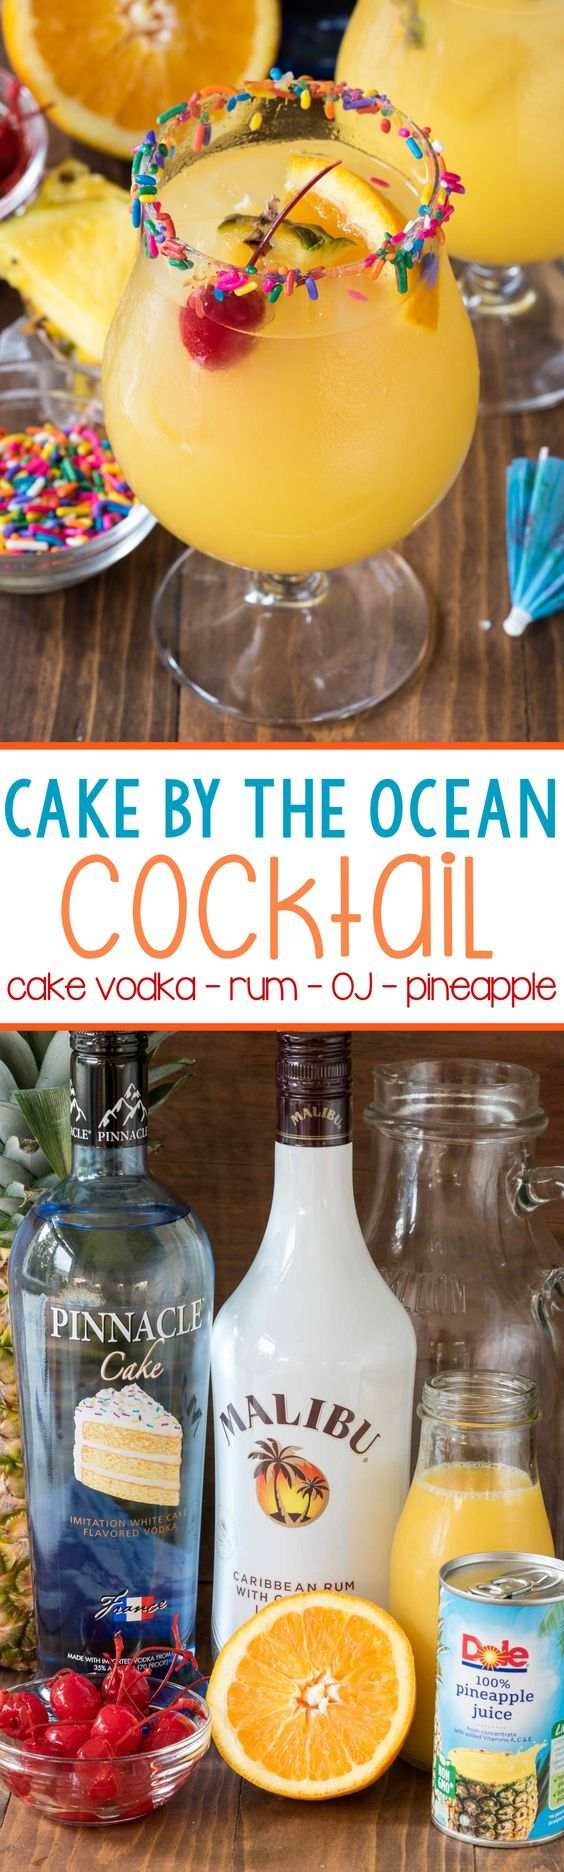 Cake by the Ocean Cocktail made with Cake Vodka, Coconut Rum, Orange and Pineapple Juices! You can whip up a pitcher of these in